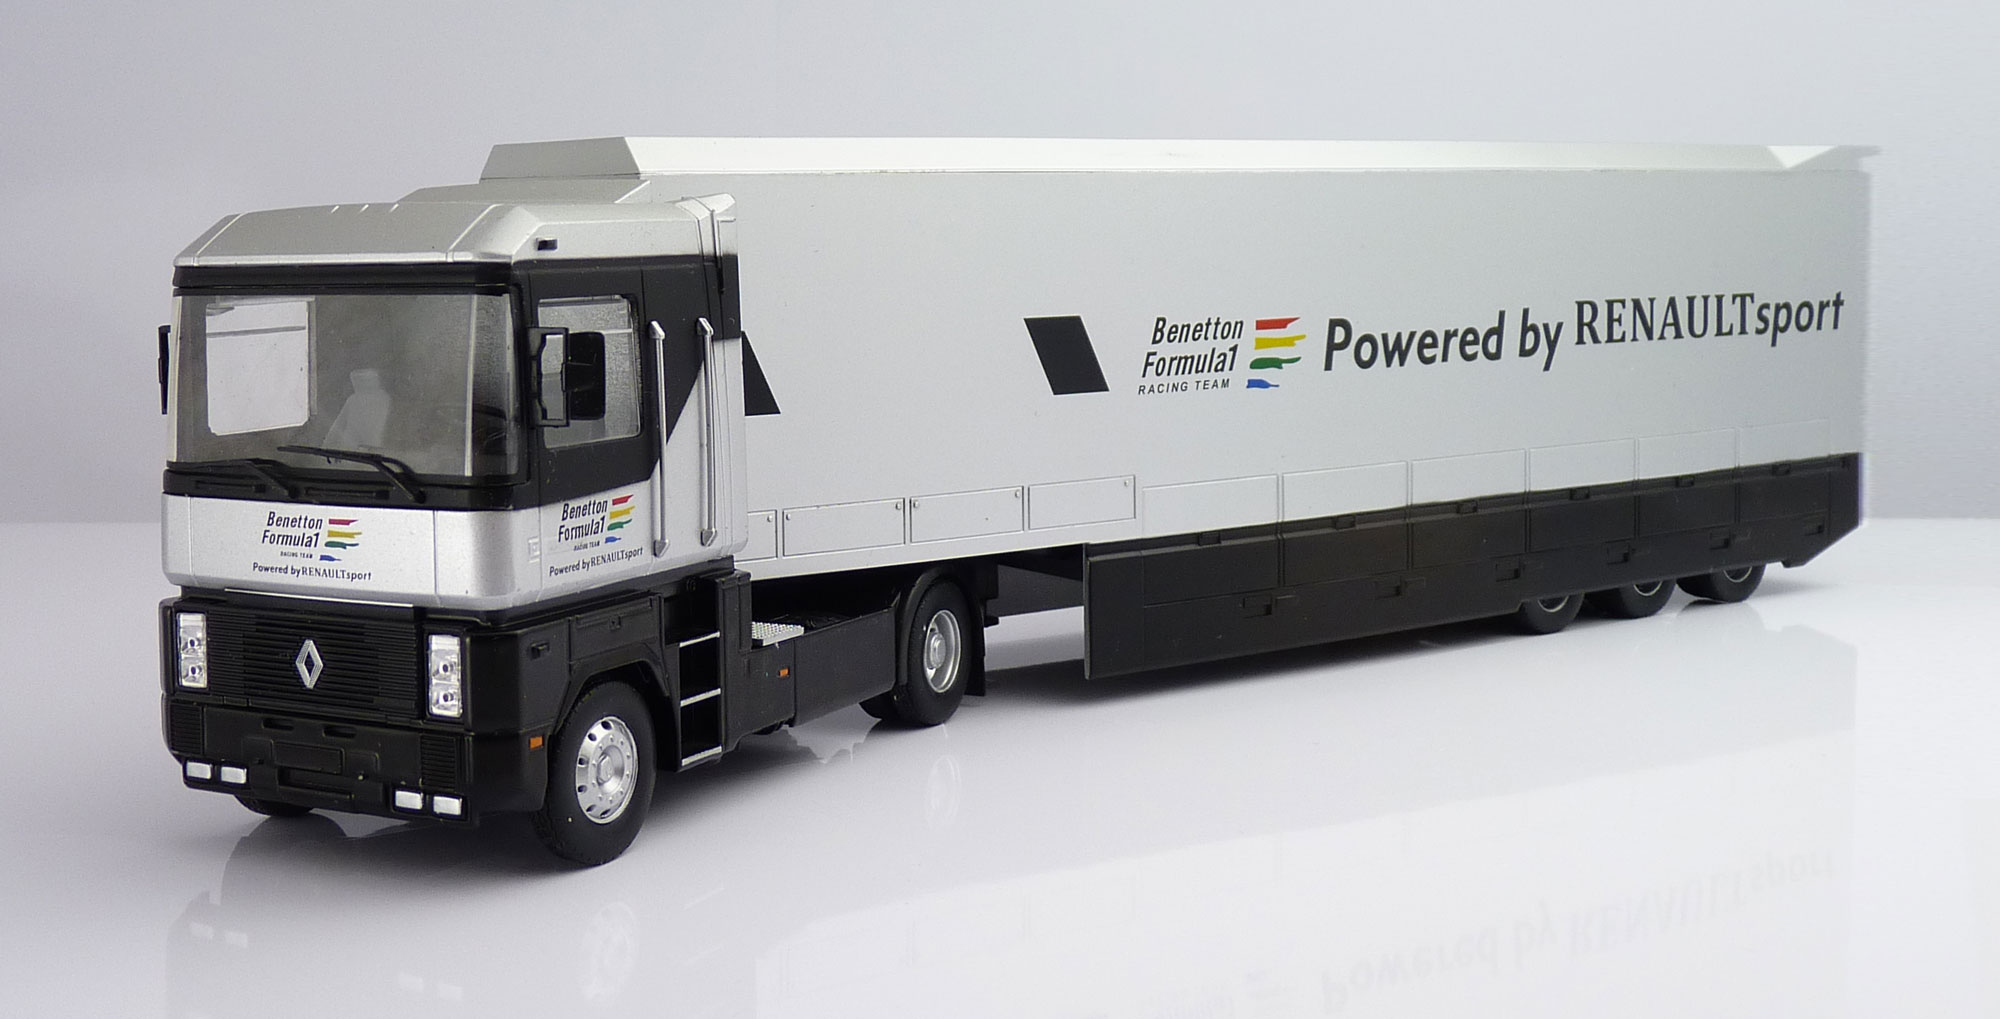 F1 Car Collection Benetton Transporter Truck